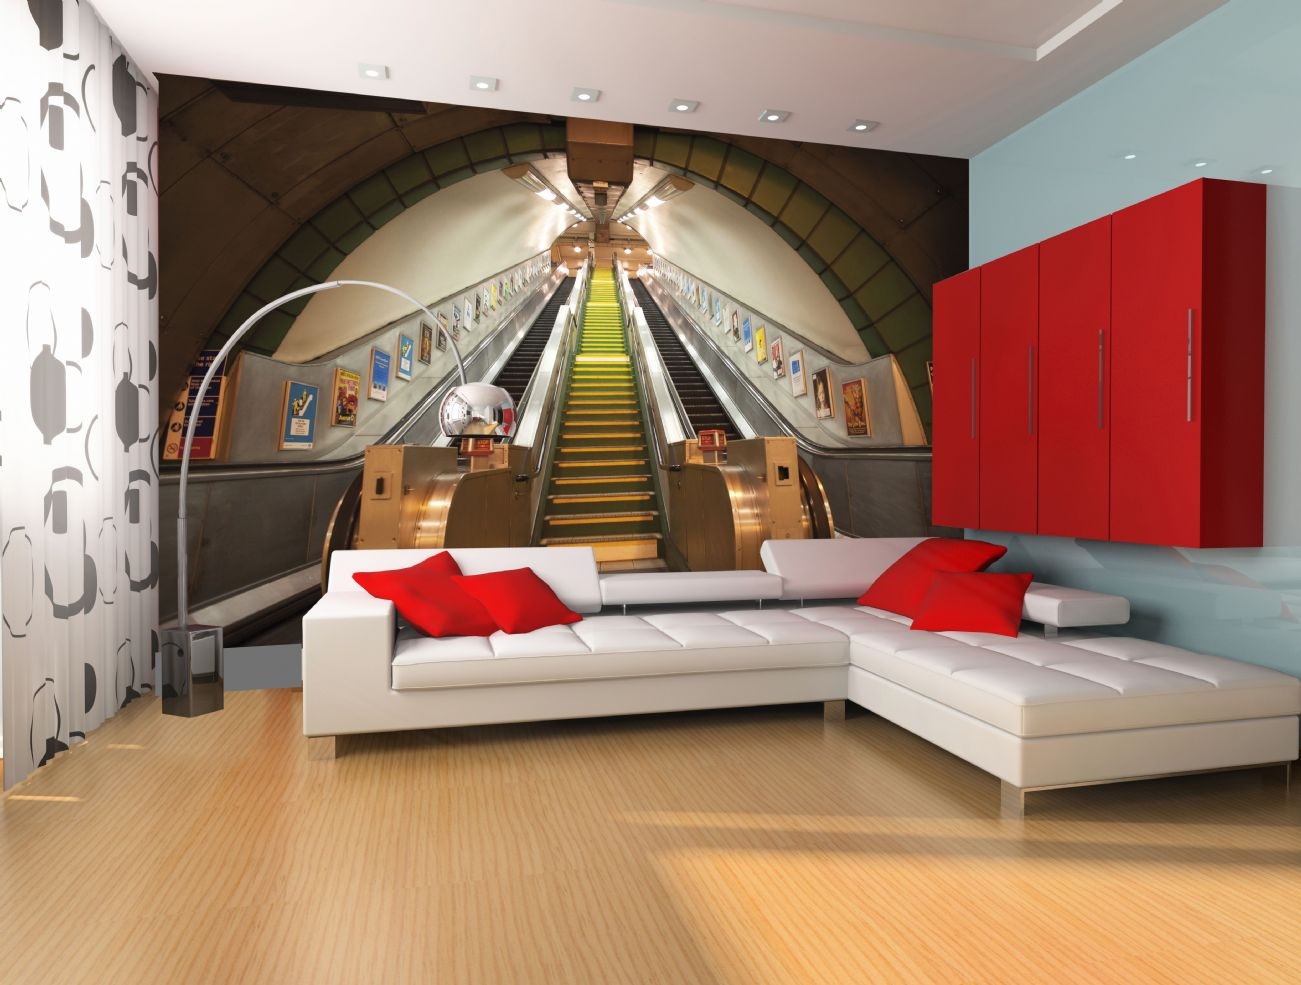 Giant wallpaper wall subway train station london for London themed bathroom accessories